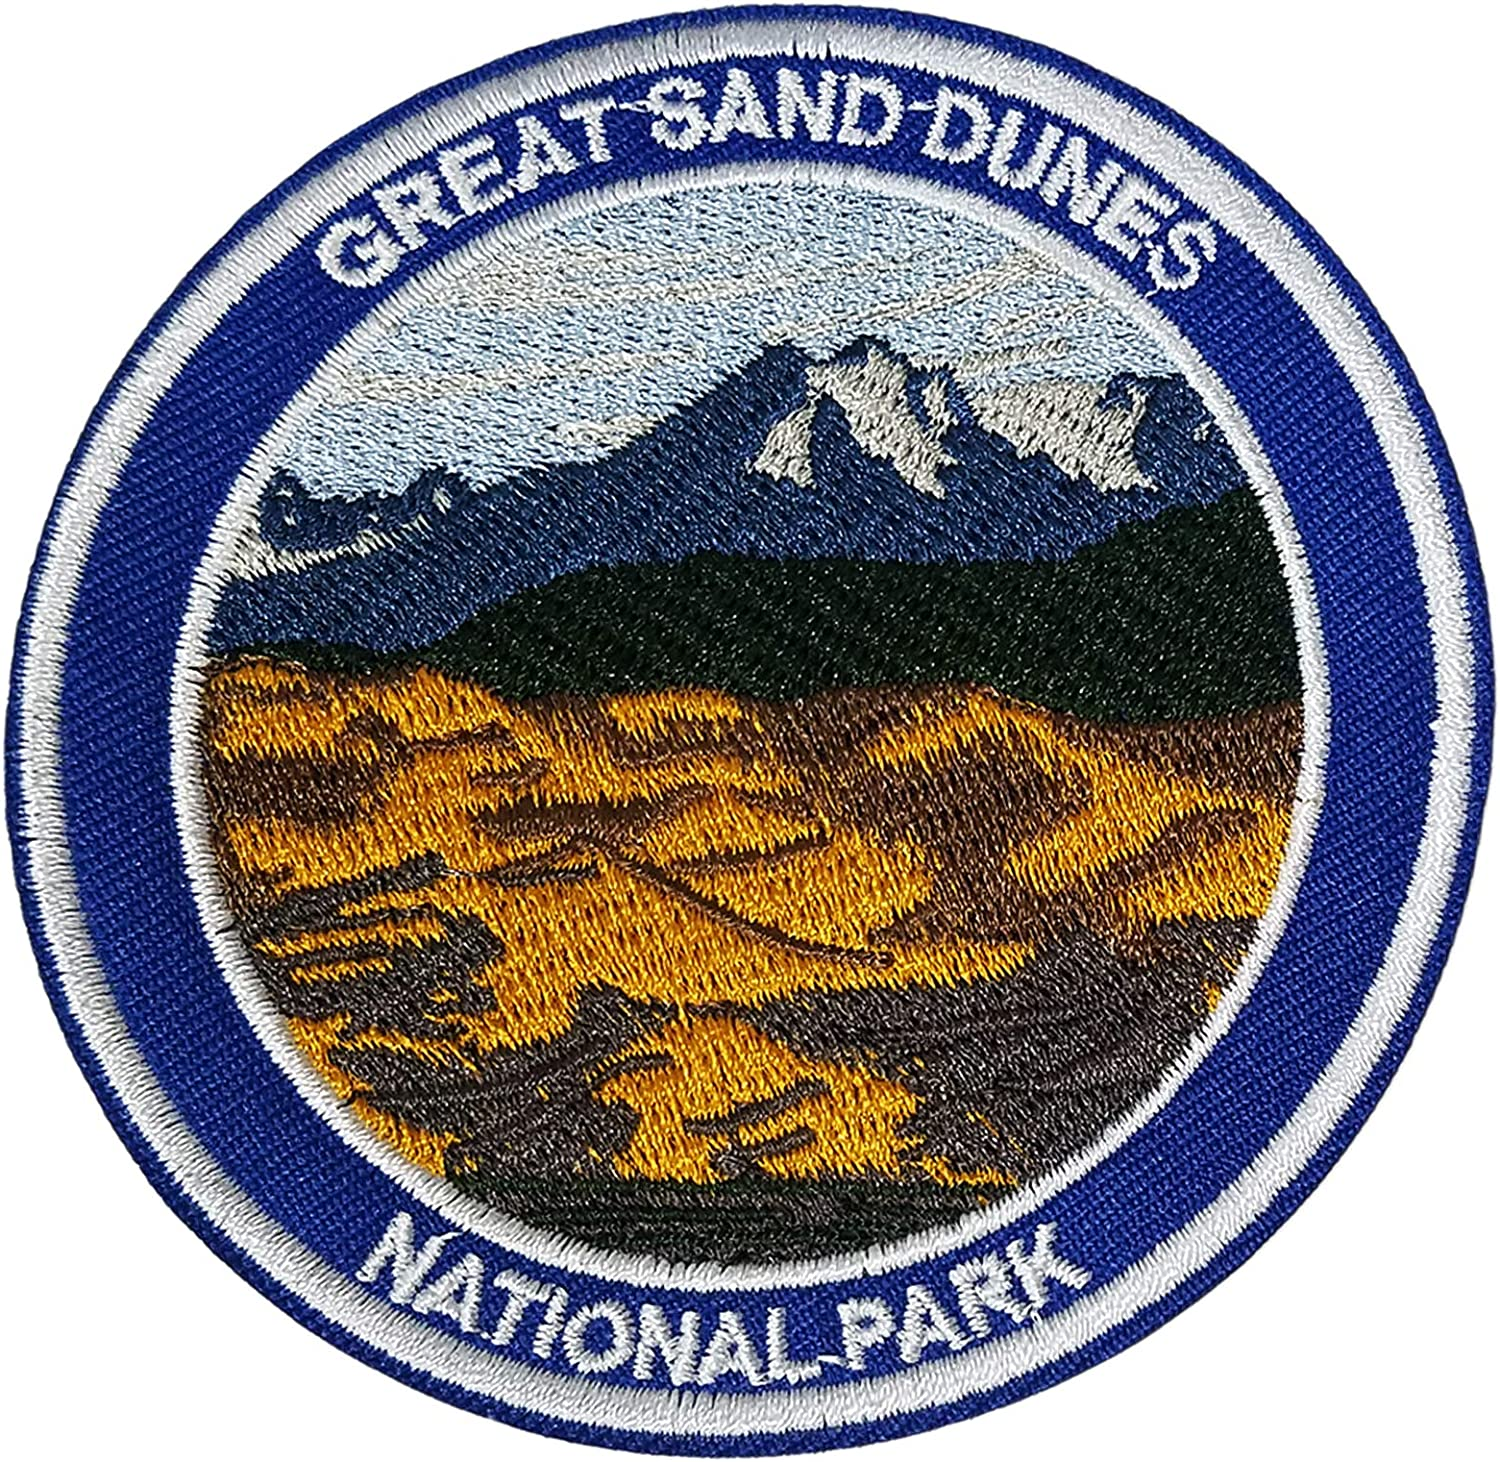 """Grand Sand Dunes National Park 3.5"""" Embroidered Patch DIY Iron or Sew-on Decorative Vacation Travel Souvenir Applique Wander Nature Wildlife Hike Trek Camping Explore Mountains Stars Moon Bear Wolf"""